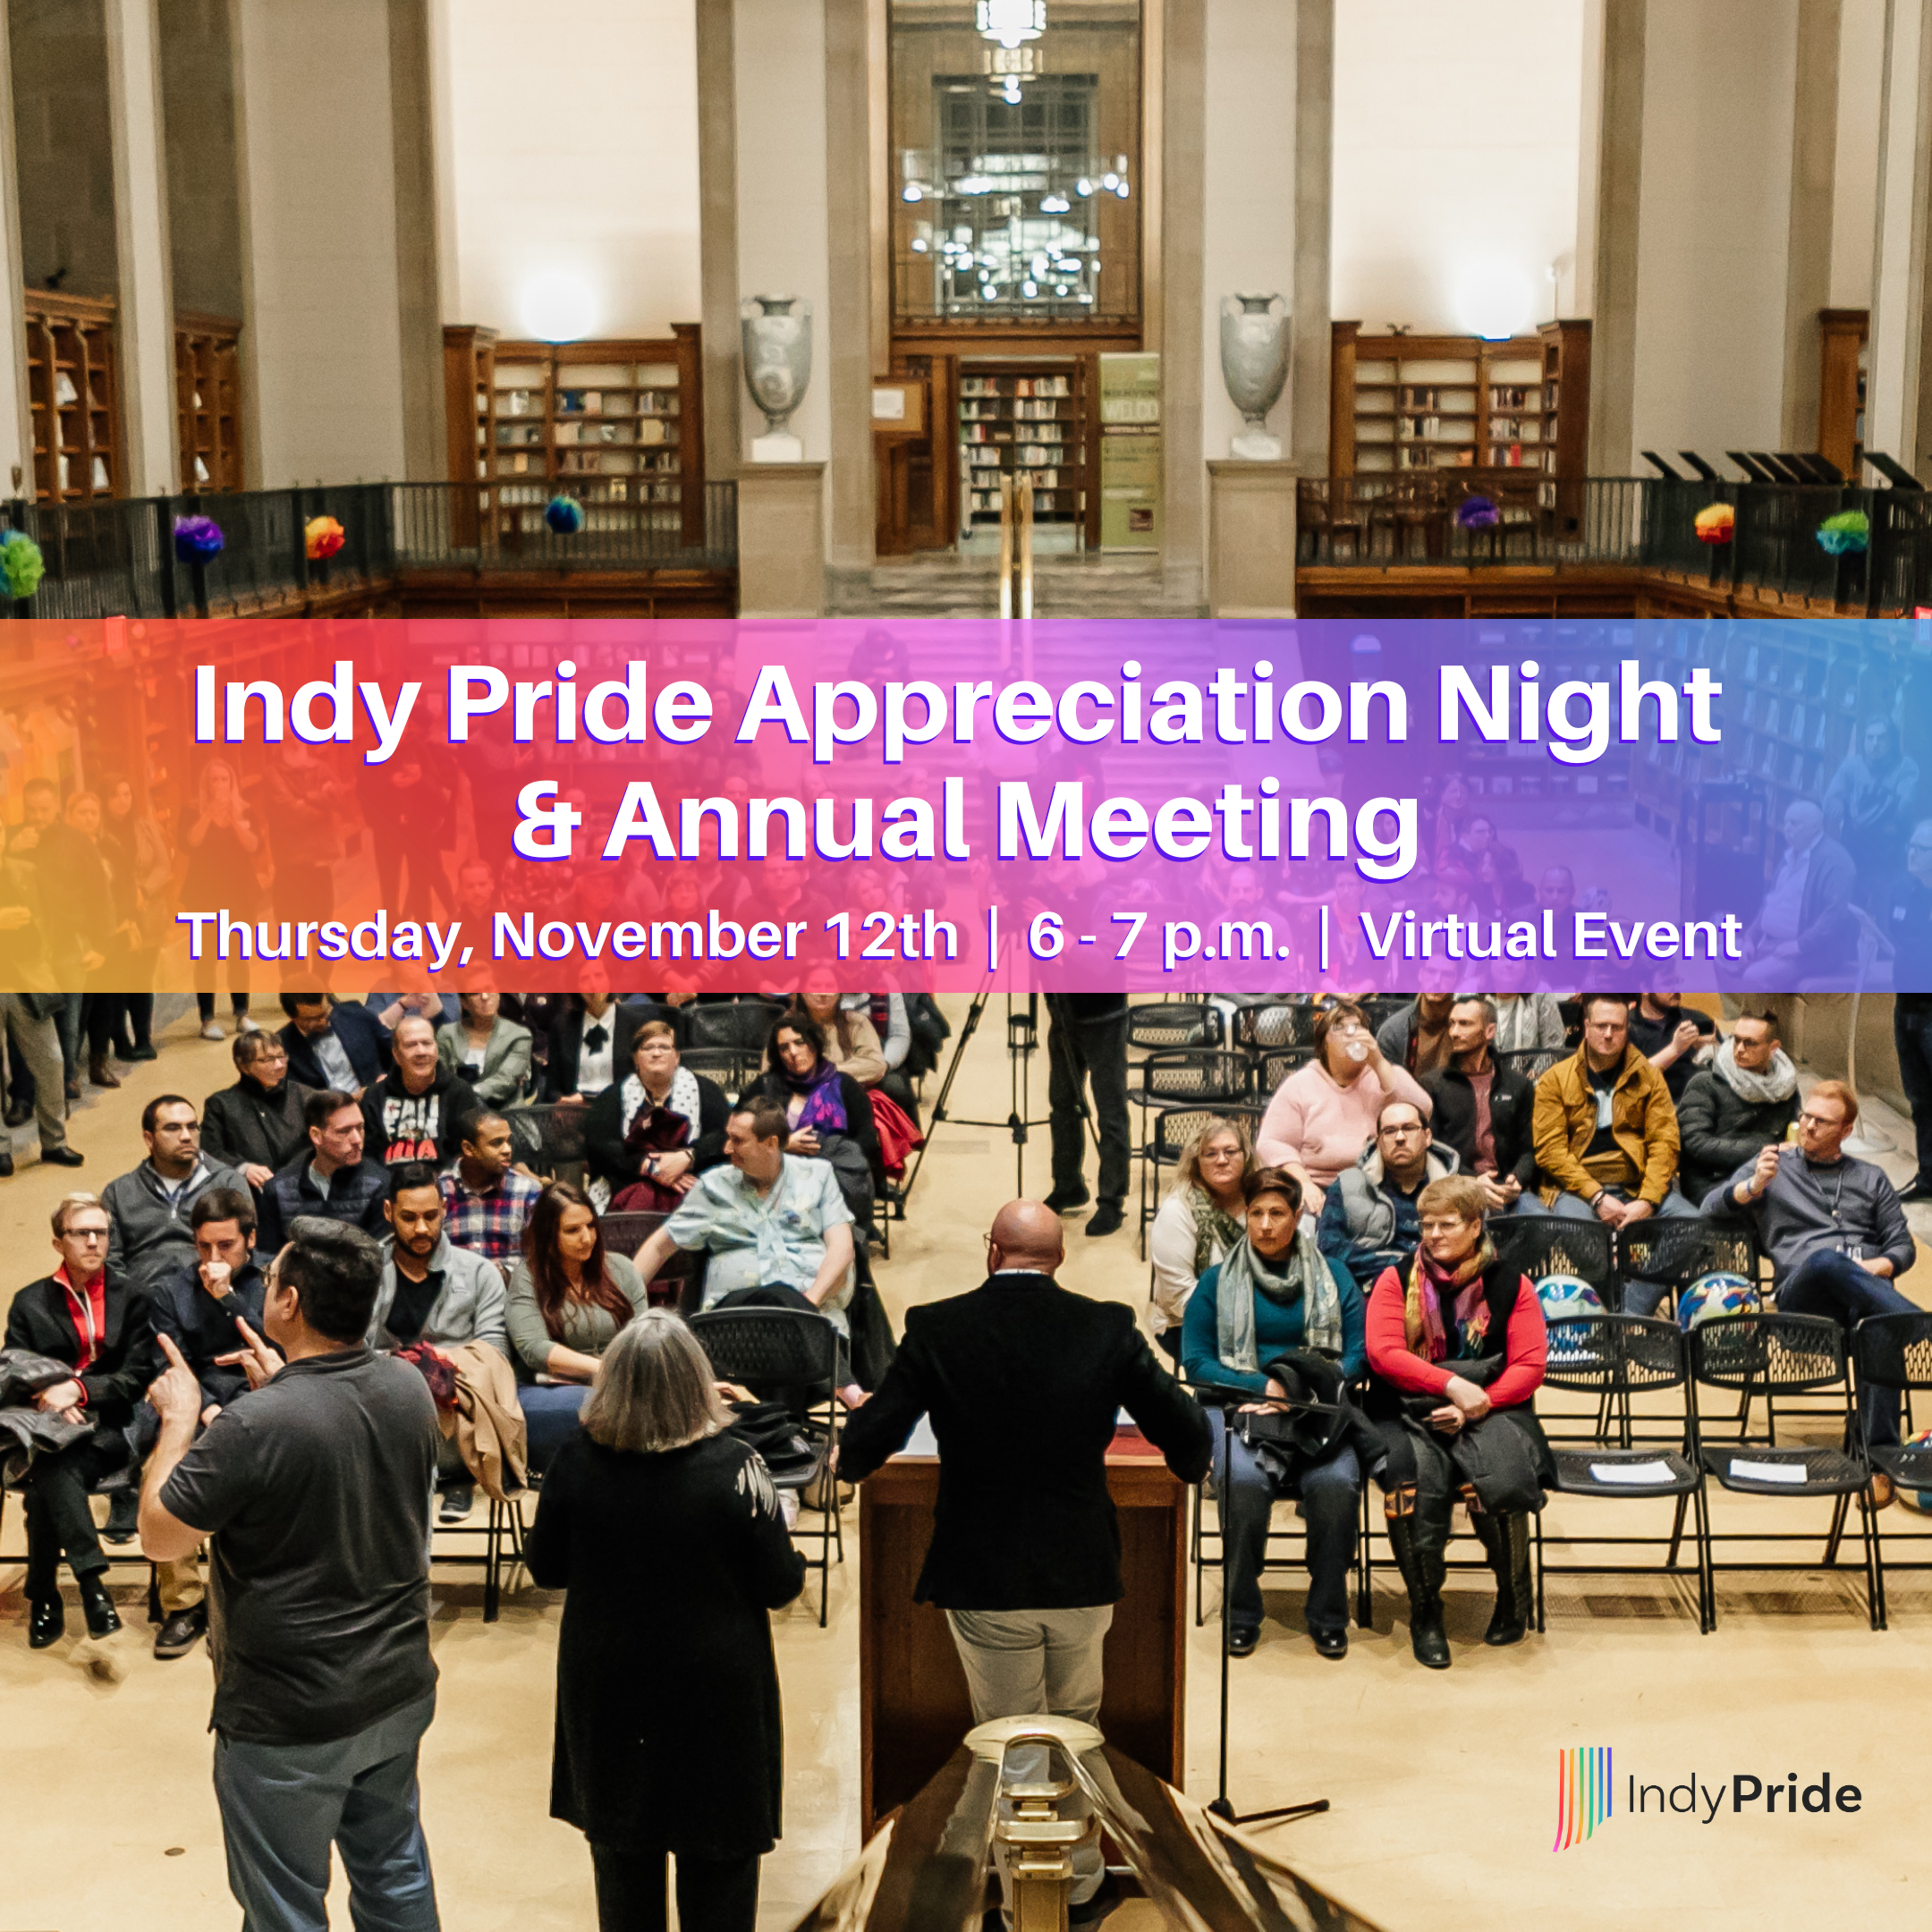 Indy Pride Appreciation Night and Annual Meeting 2020